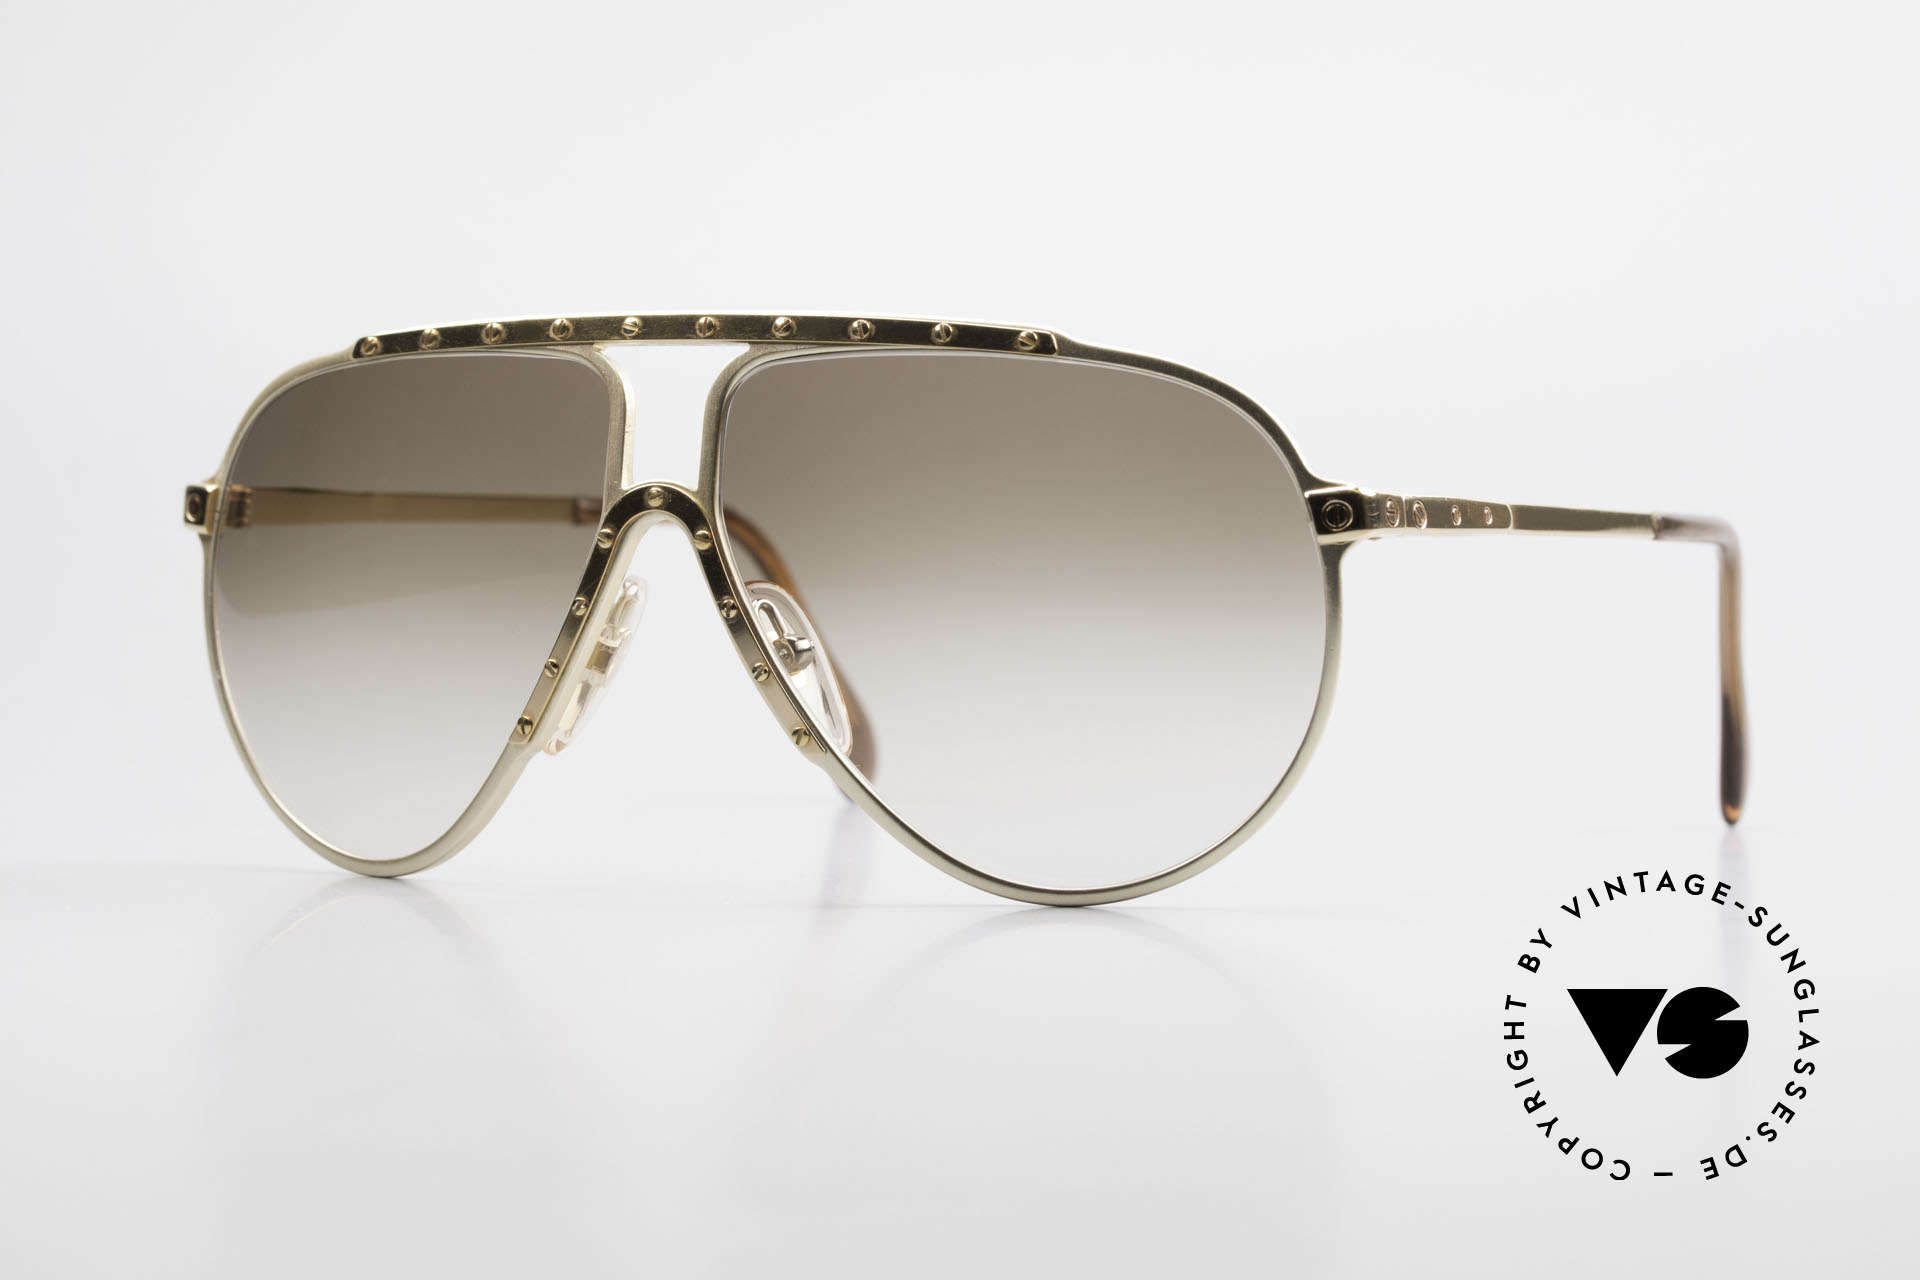 Alpina M1 Limited Edition 80's Version, legendary 80's Alpina M1 sunglasses in size 60-12, Made for Men and Women